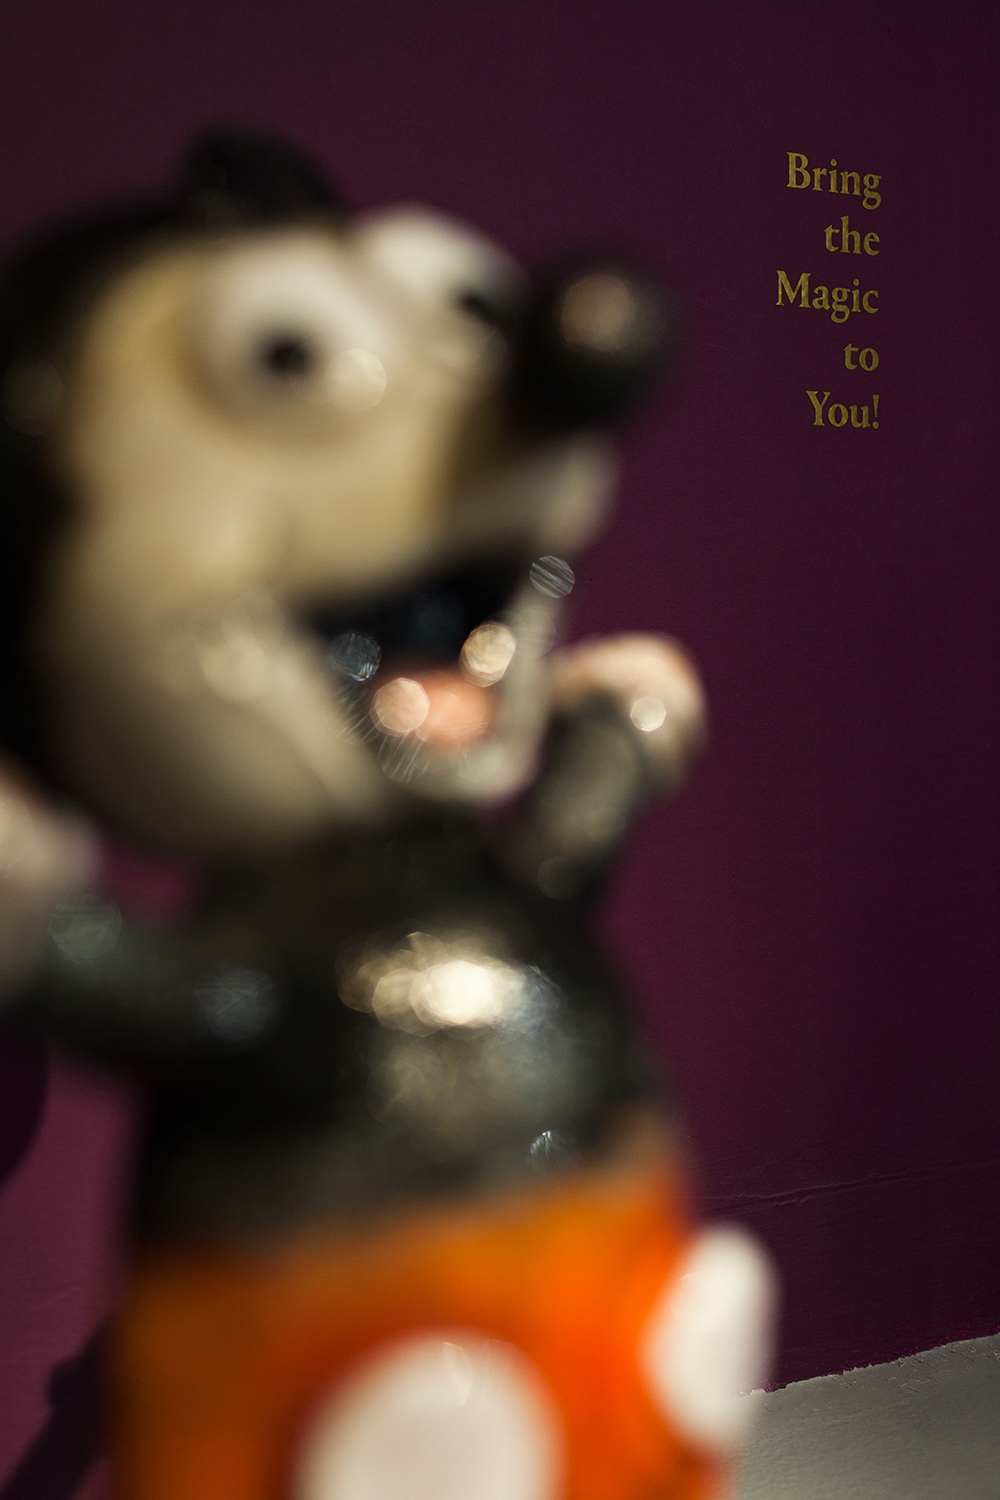 We Bring the Magic to You